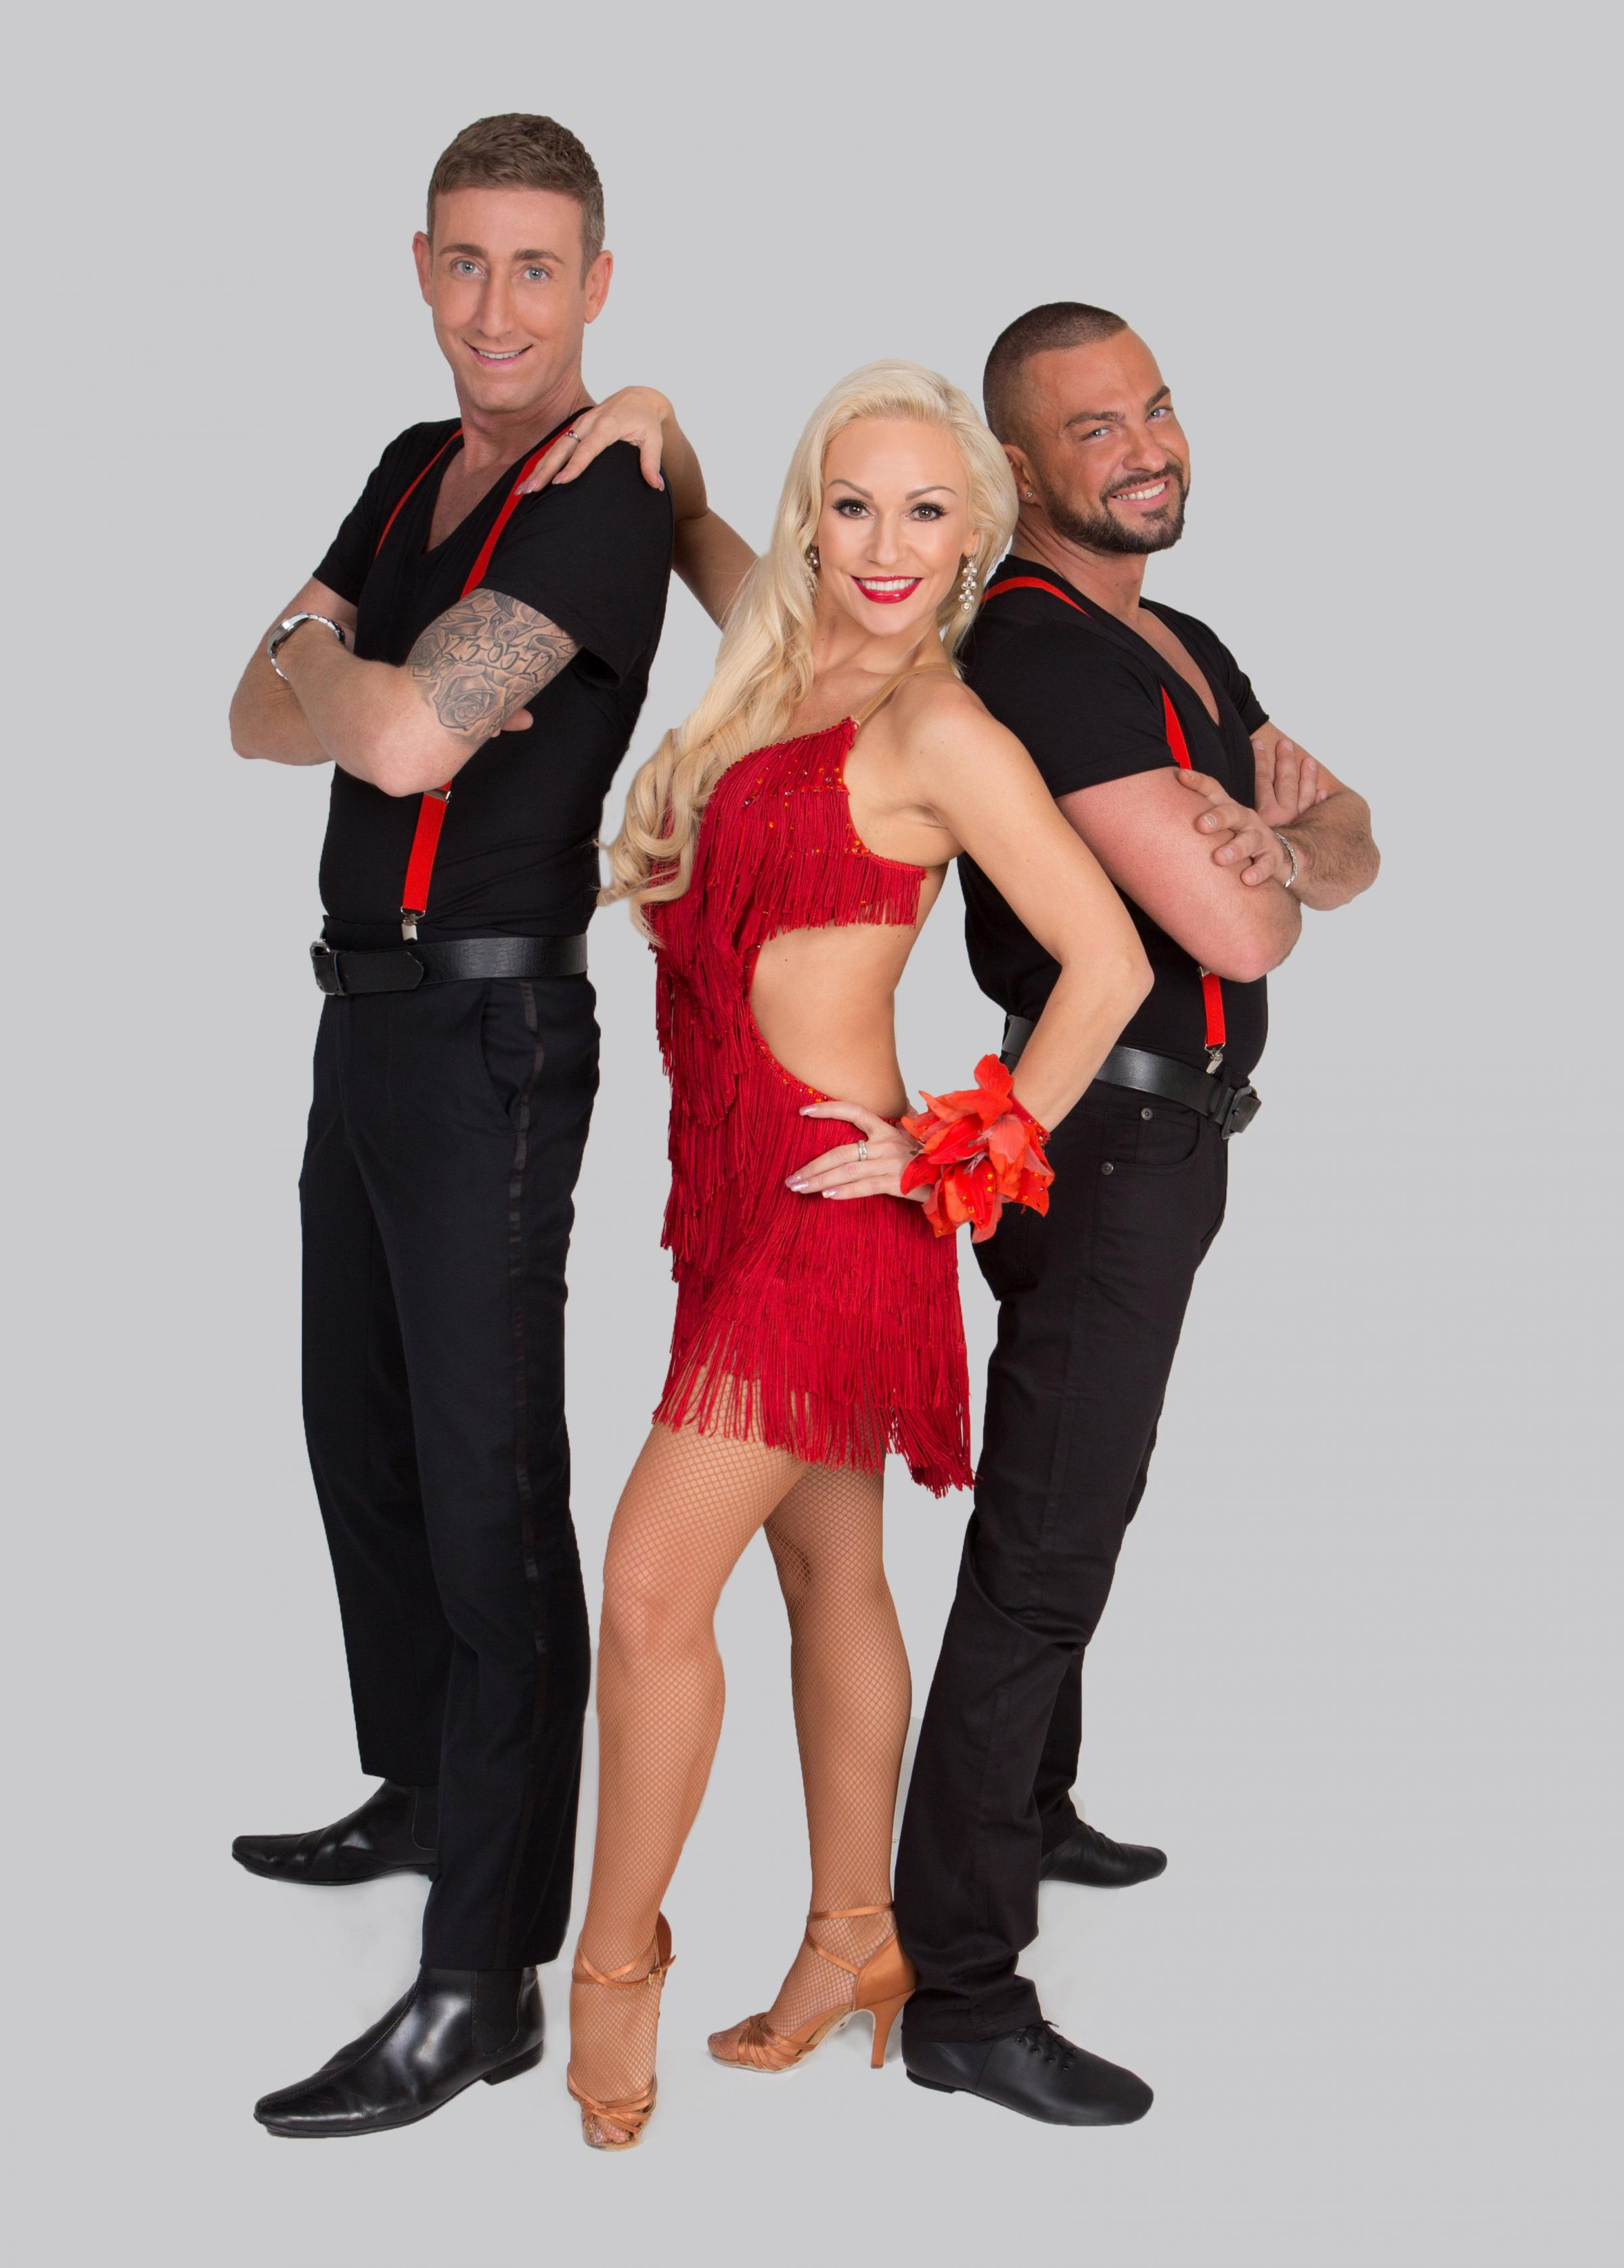 Former Strictly Come Dancing star Kristina Rihanoff set to 'Dance to the Music' in Somerset